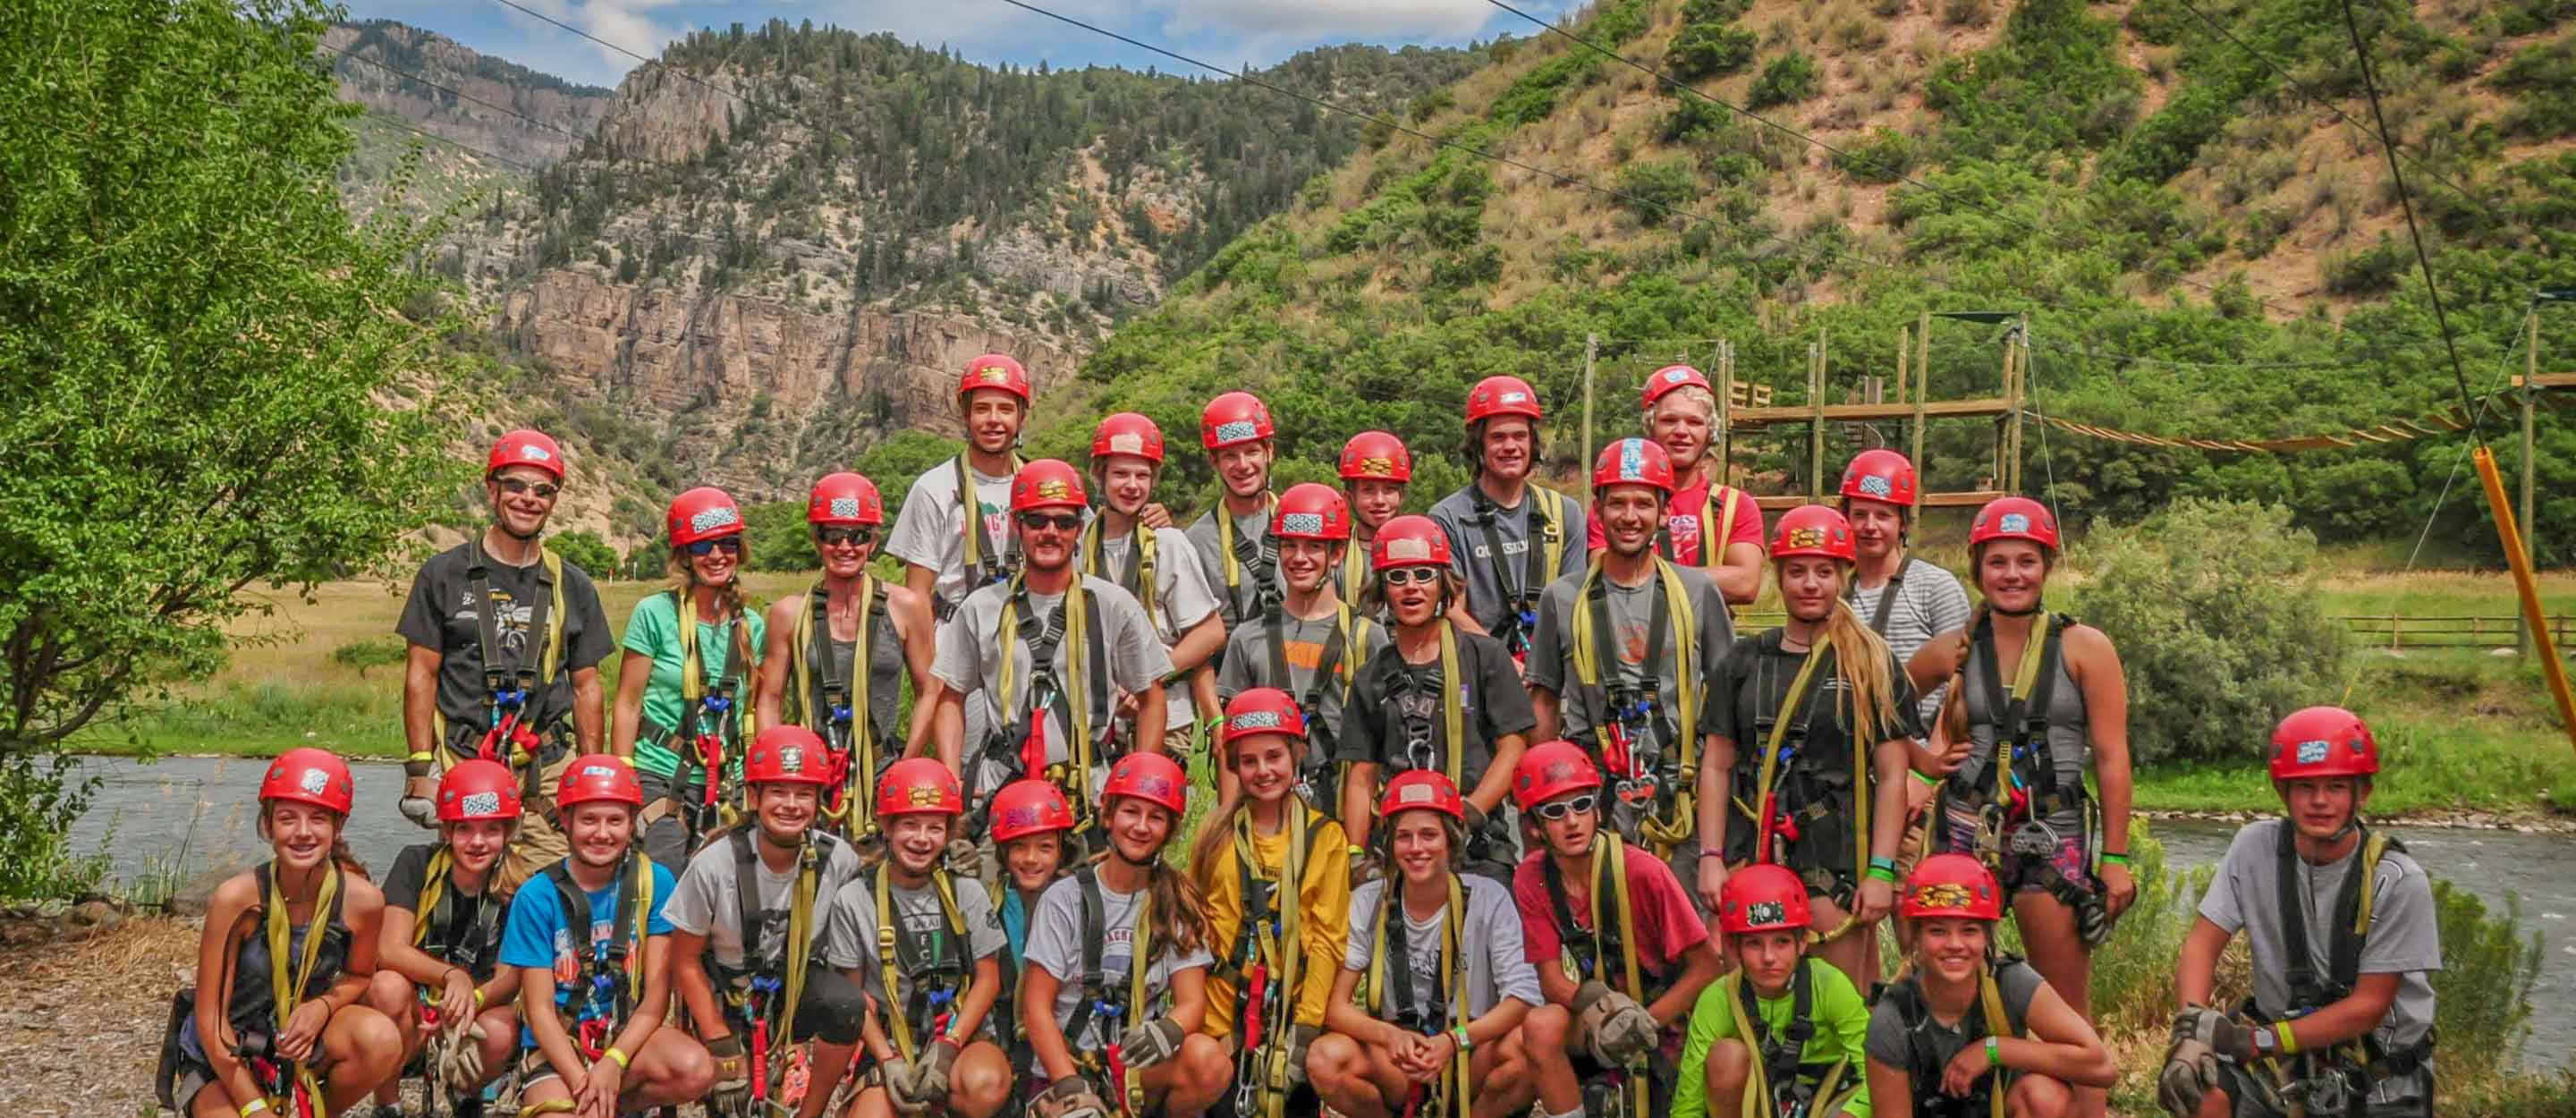 Rafting Amp Adventures For School Groups Sports Teams